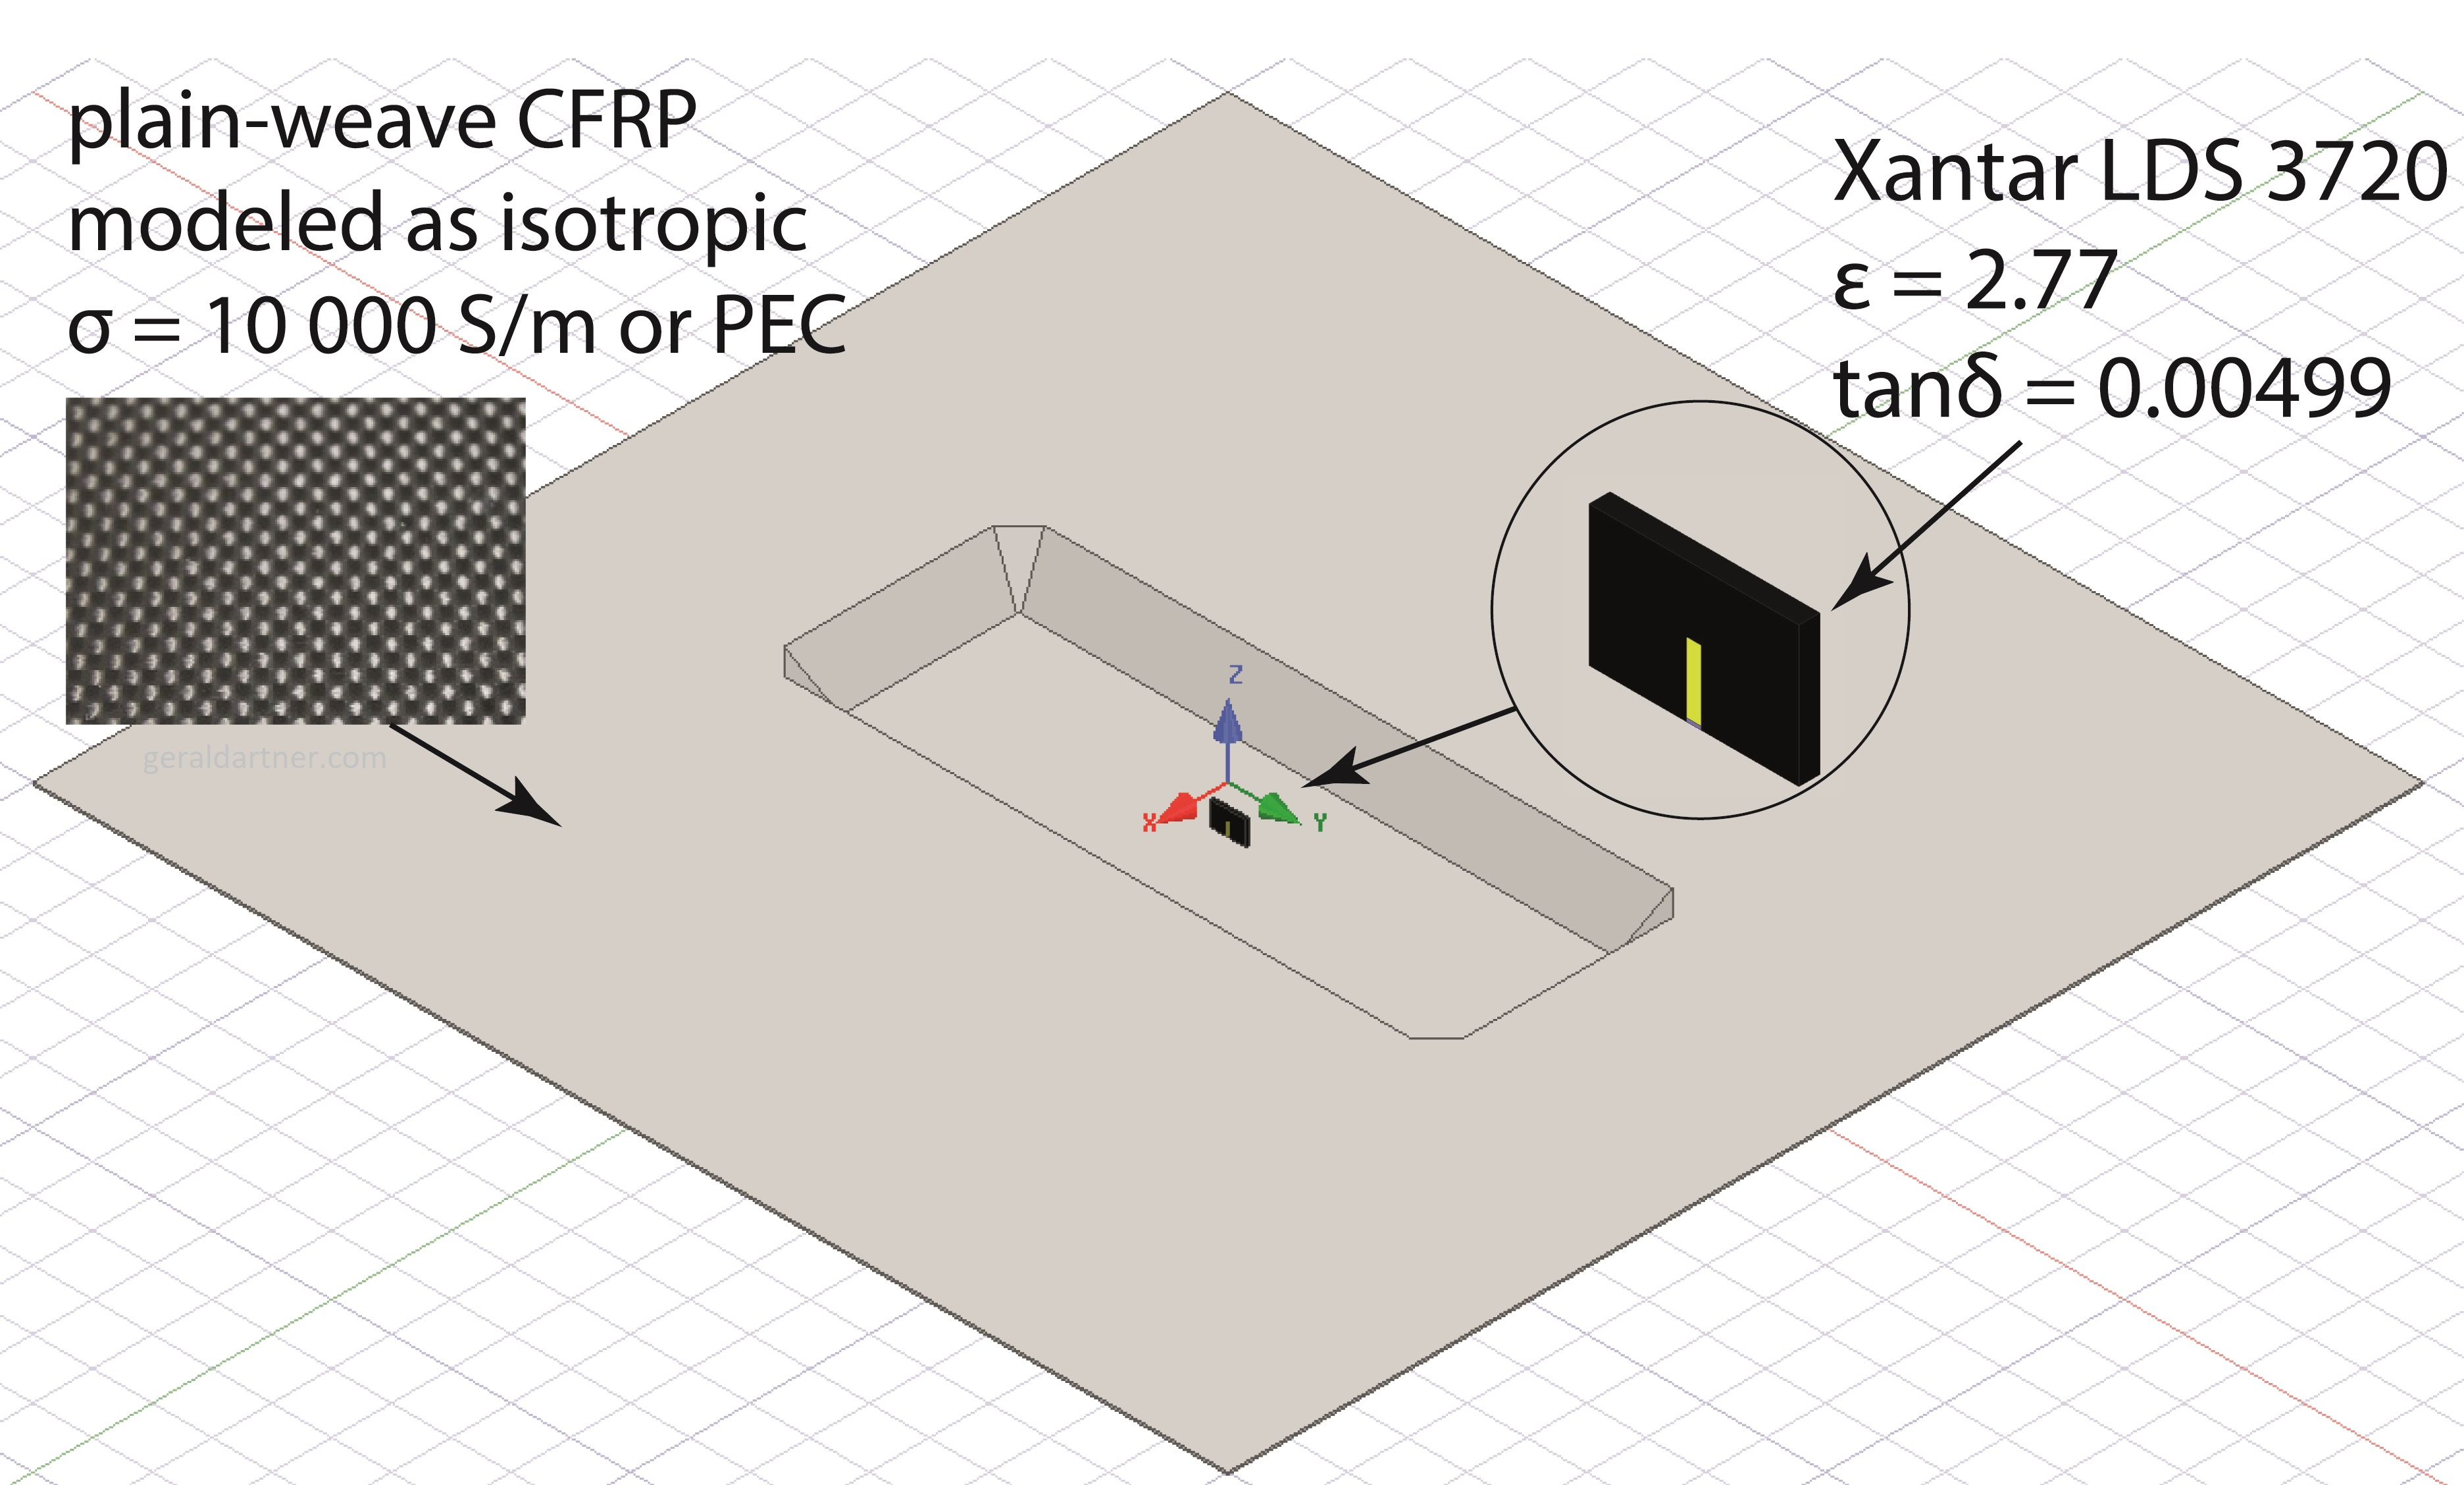 Simulation Model for Chassis Antenna Cavities Made from CFRP